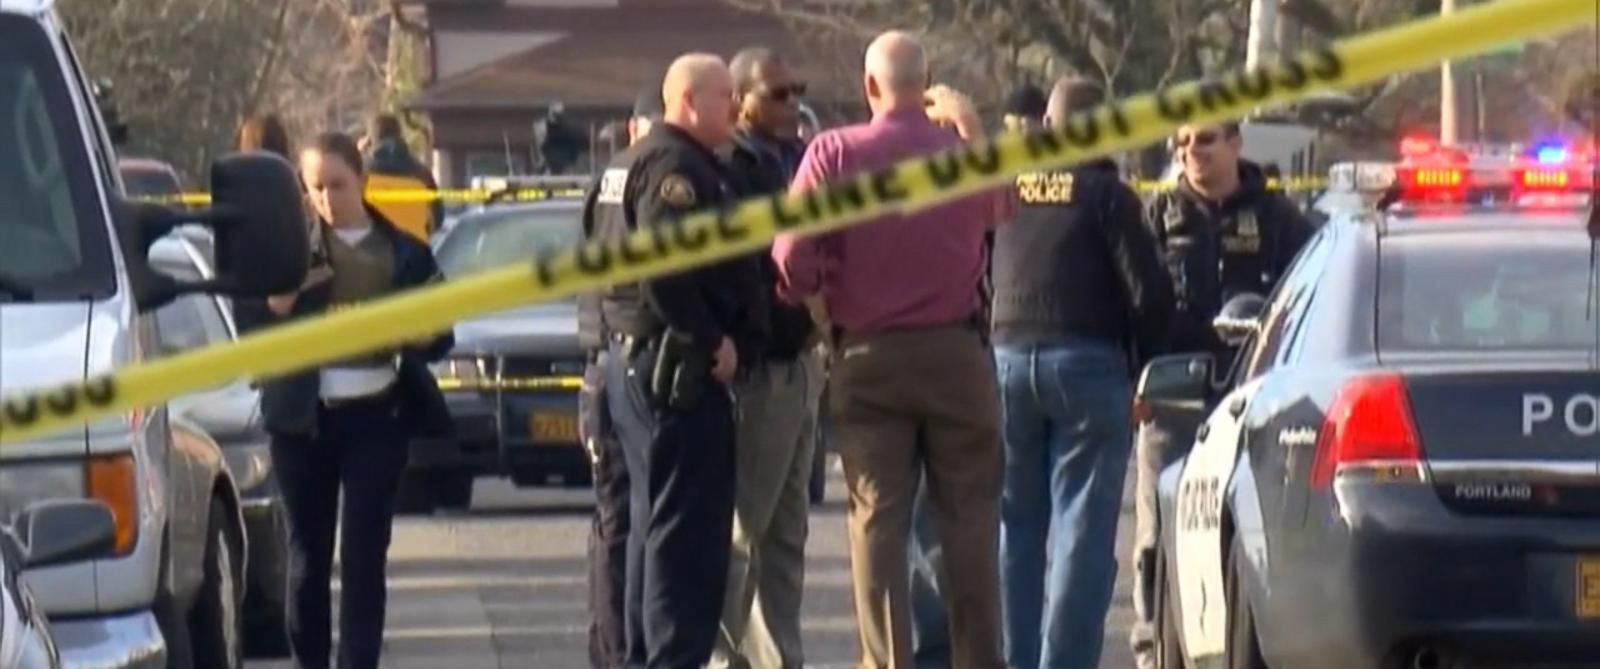 PHOTO: A shooting near a high school in Portland, Ore. was reported on Dec. 12, 2014.